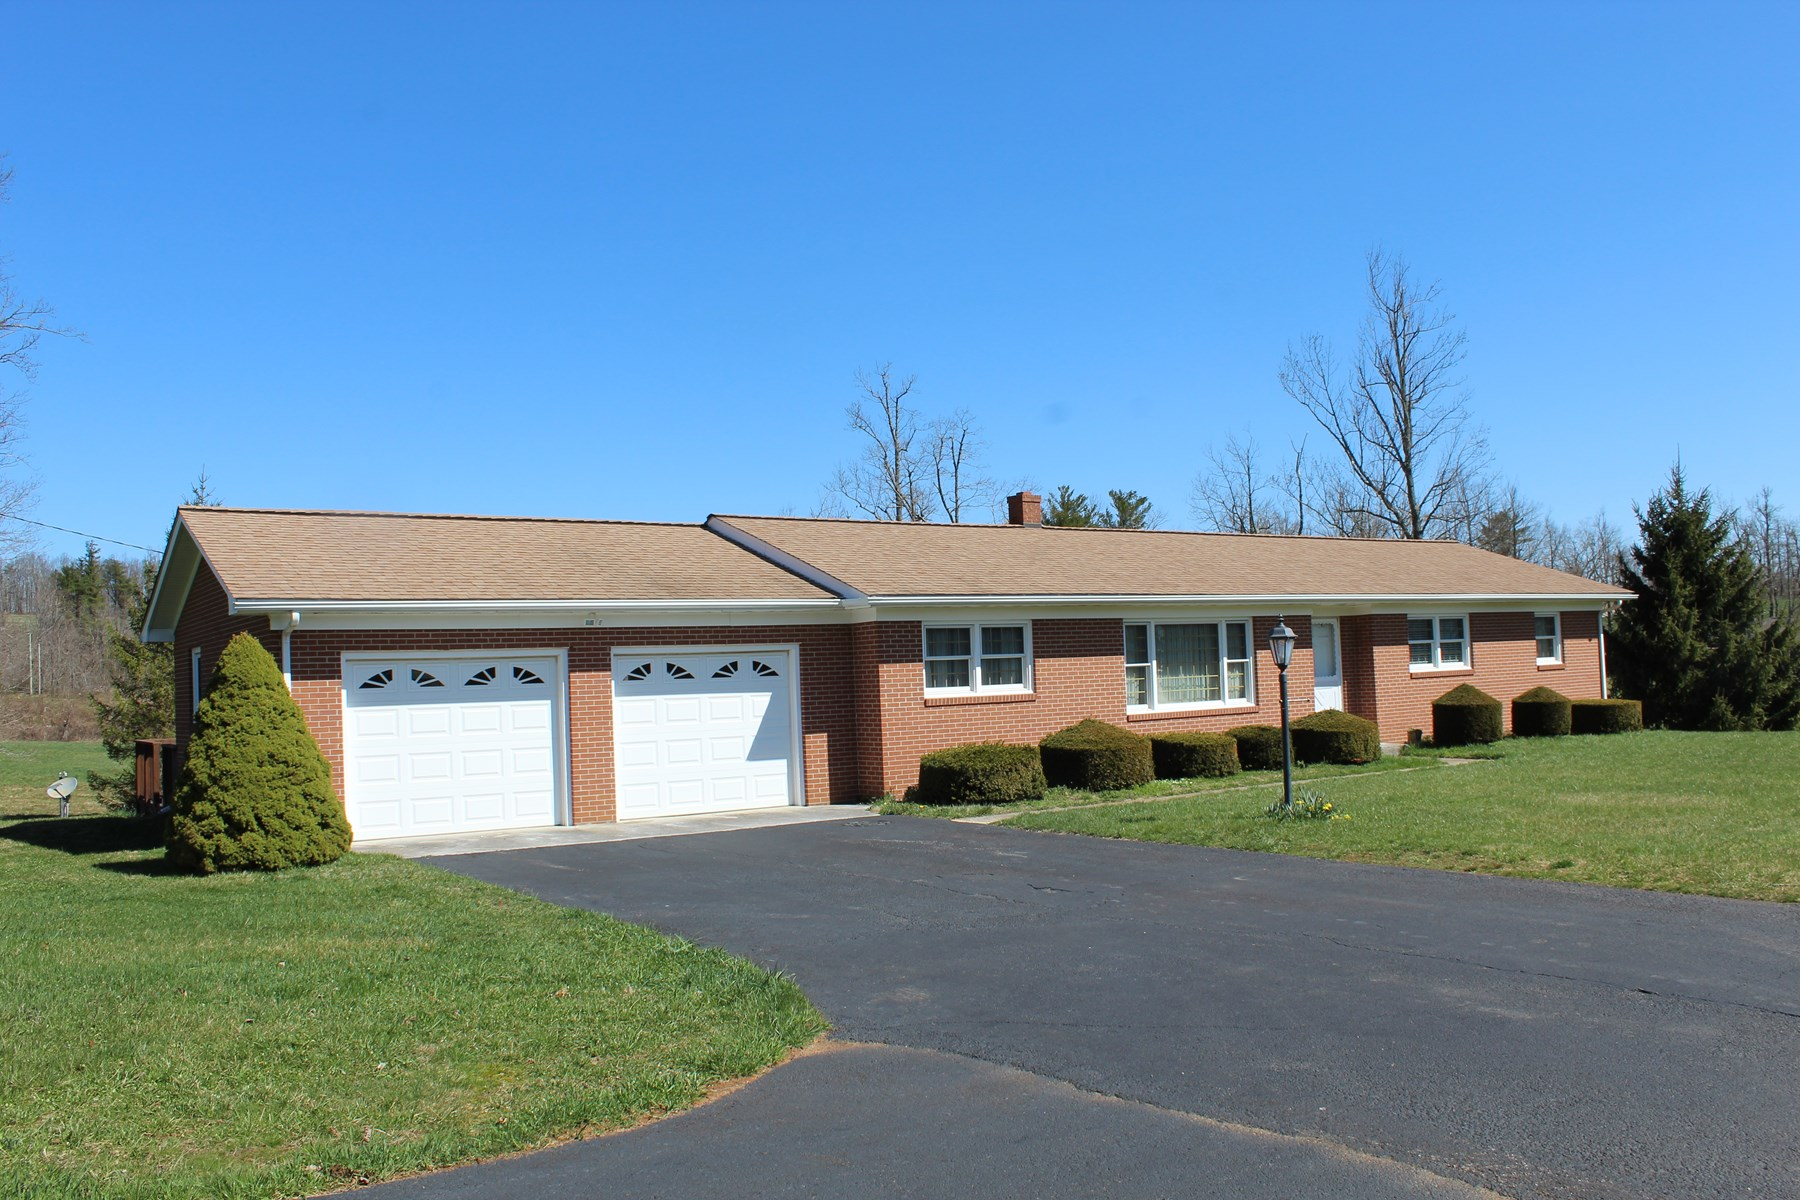 BRICK RANCH STYLE HOME LOCATED IN PATRICK COUNTY, VIRGINIA